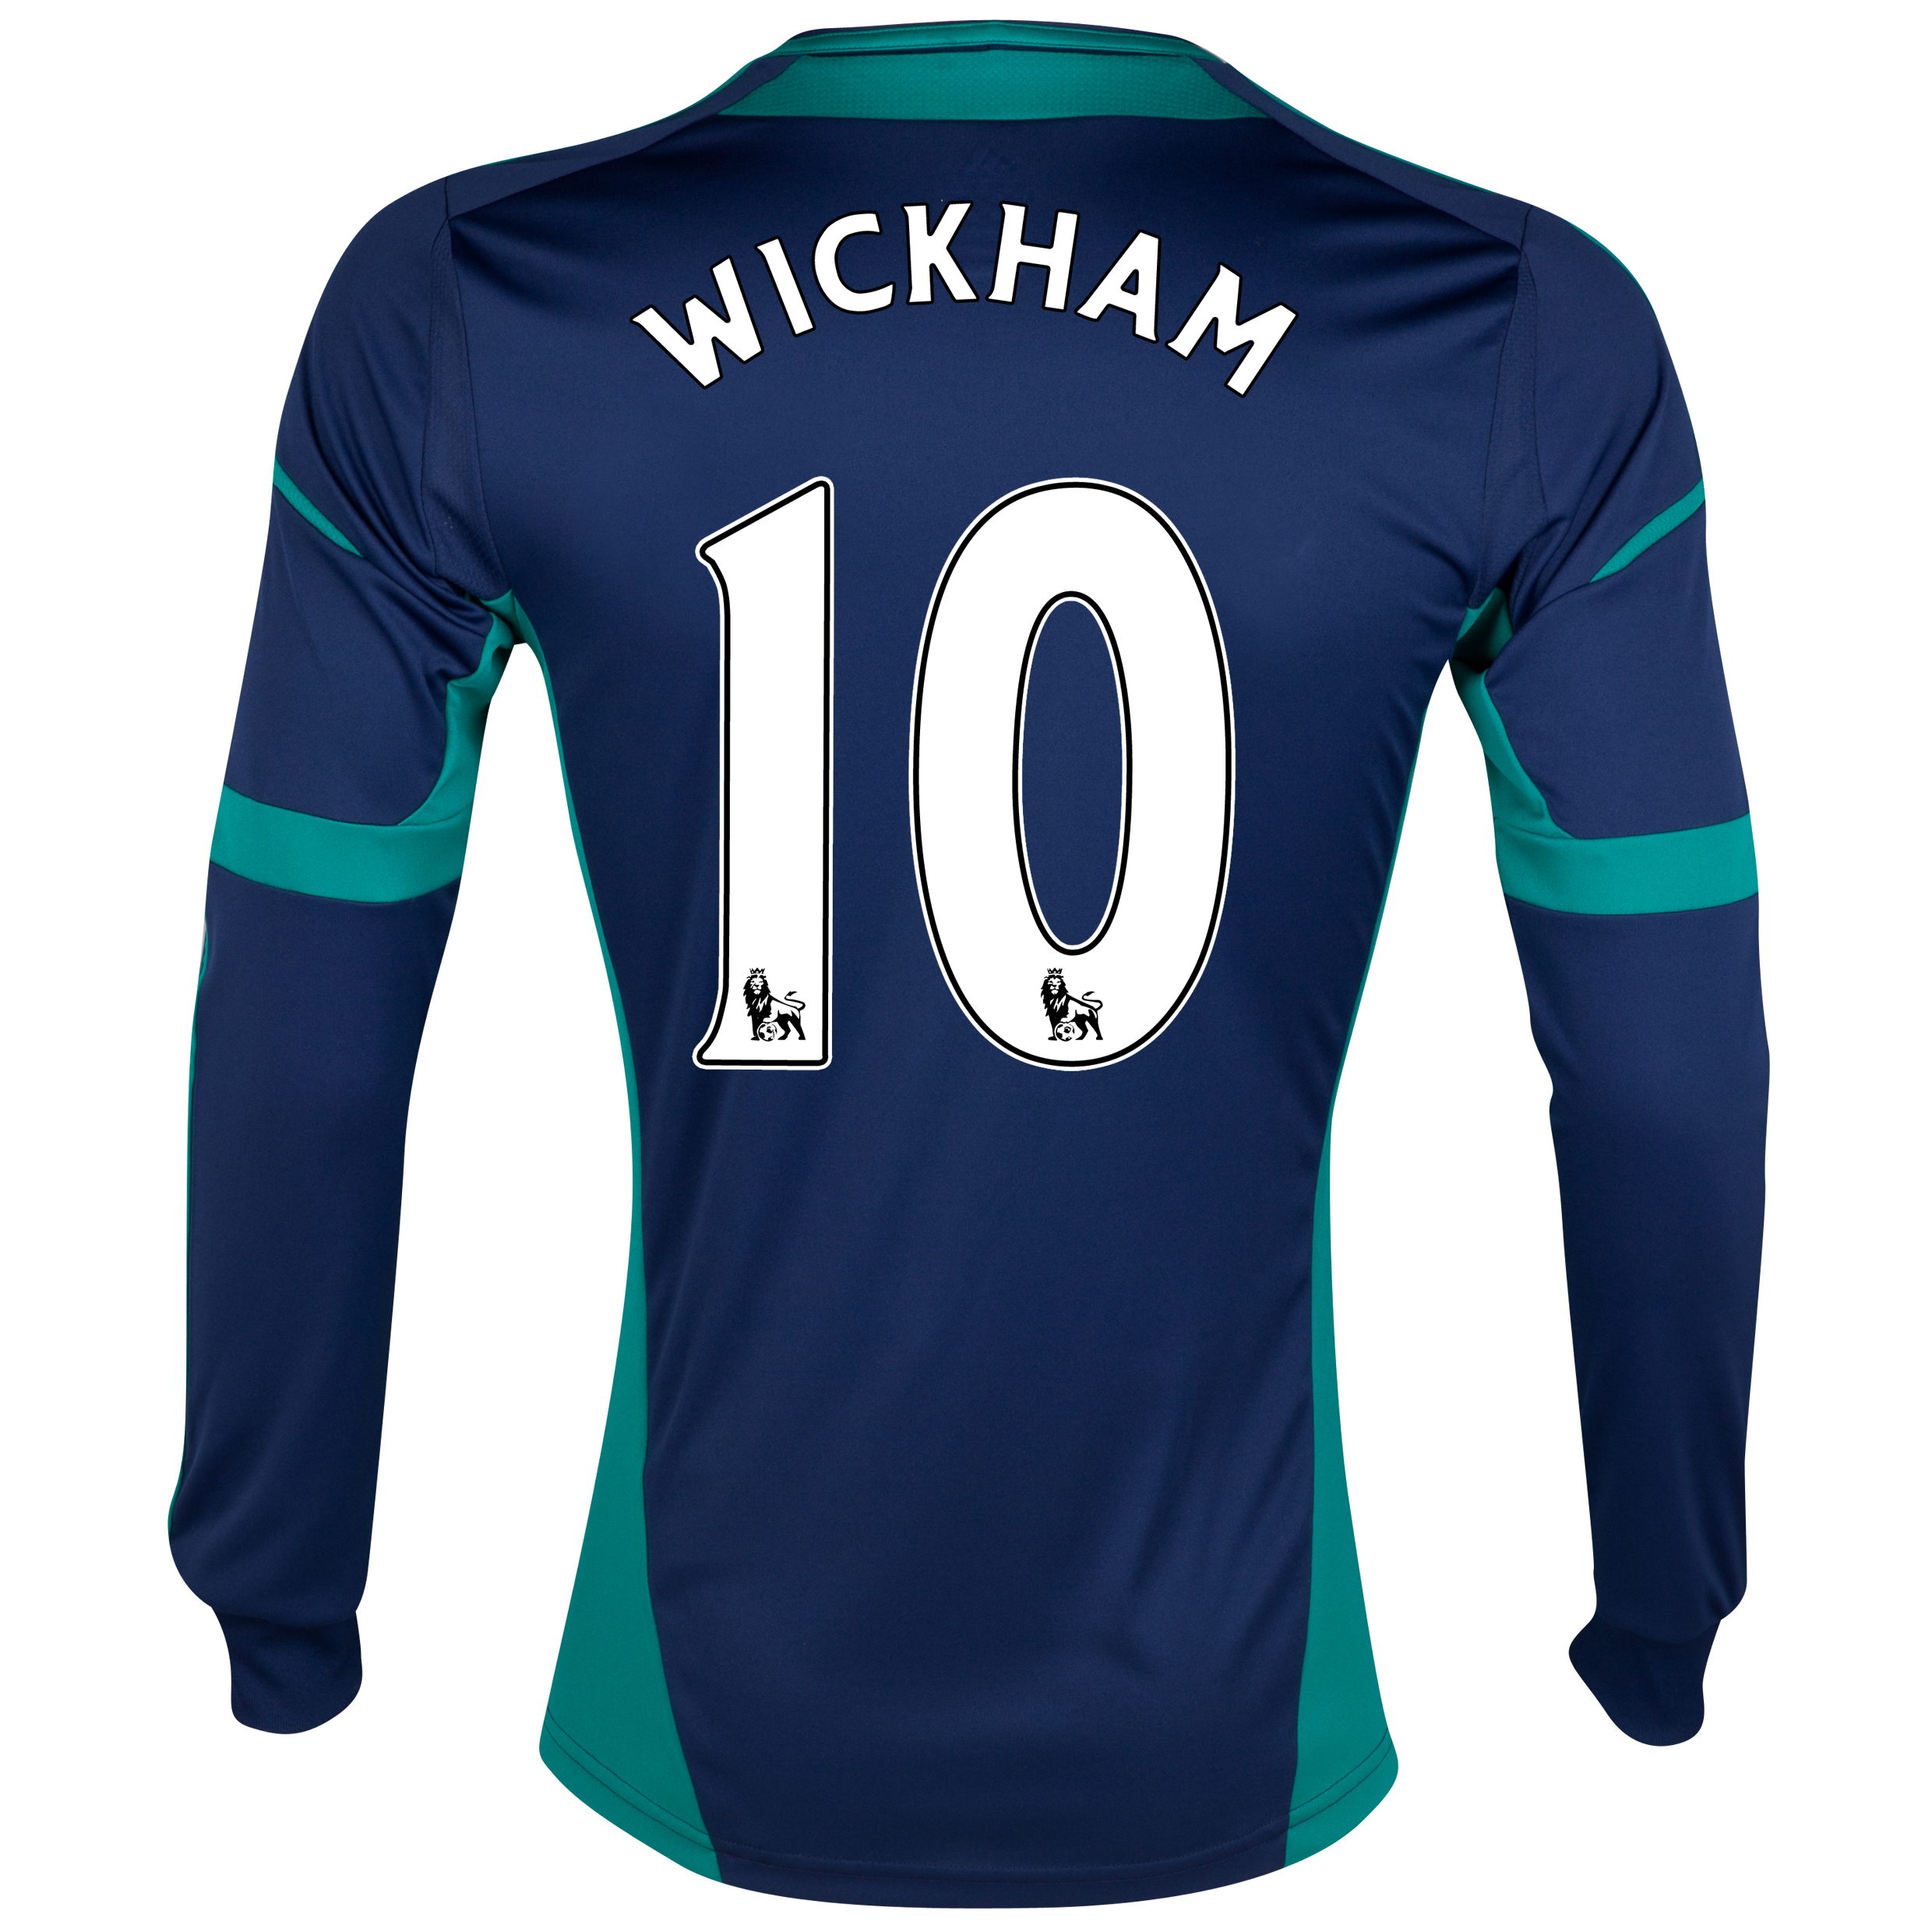 Sunderland Away Shirt 2012/13 - Long Sleeved - Junior with Wickham 10 printing